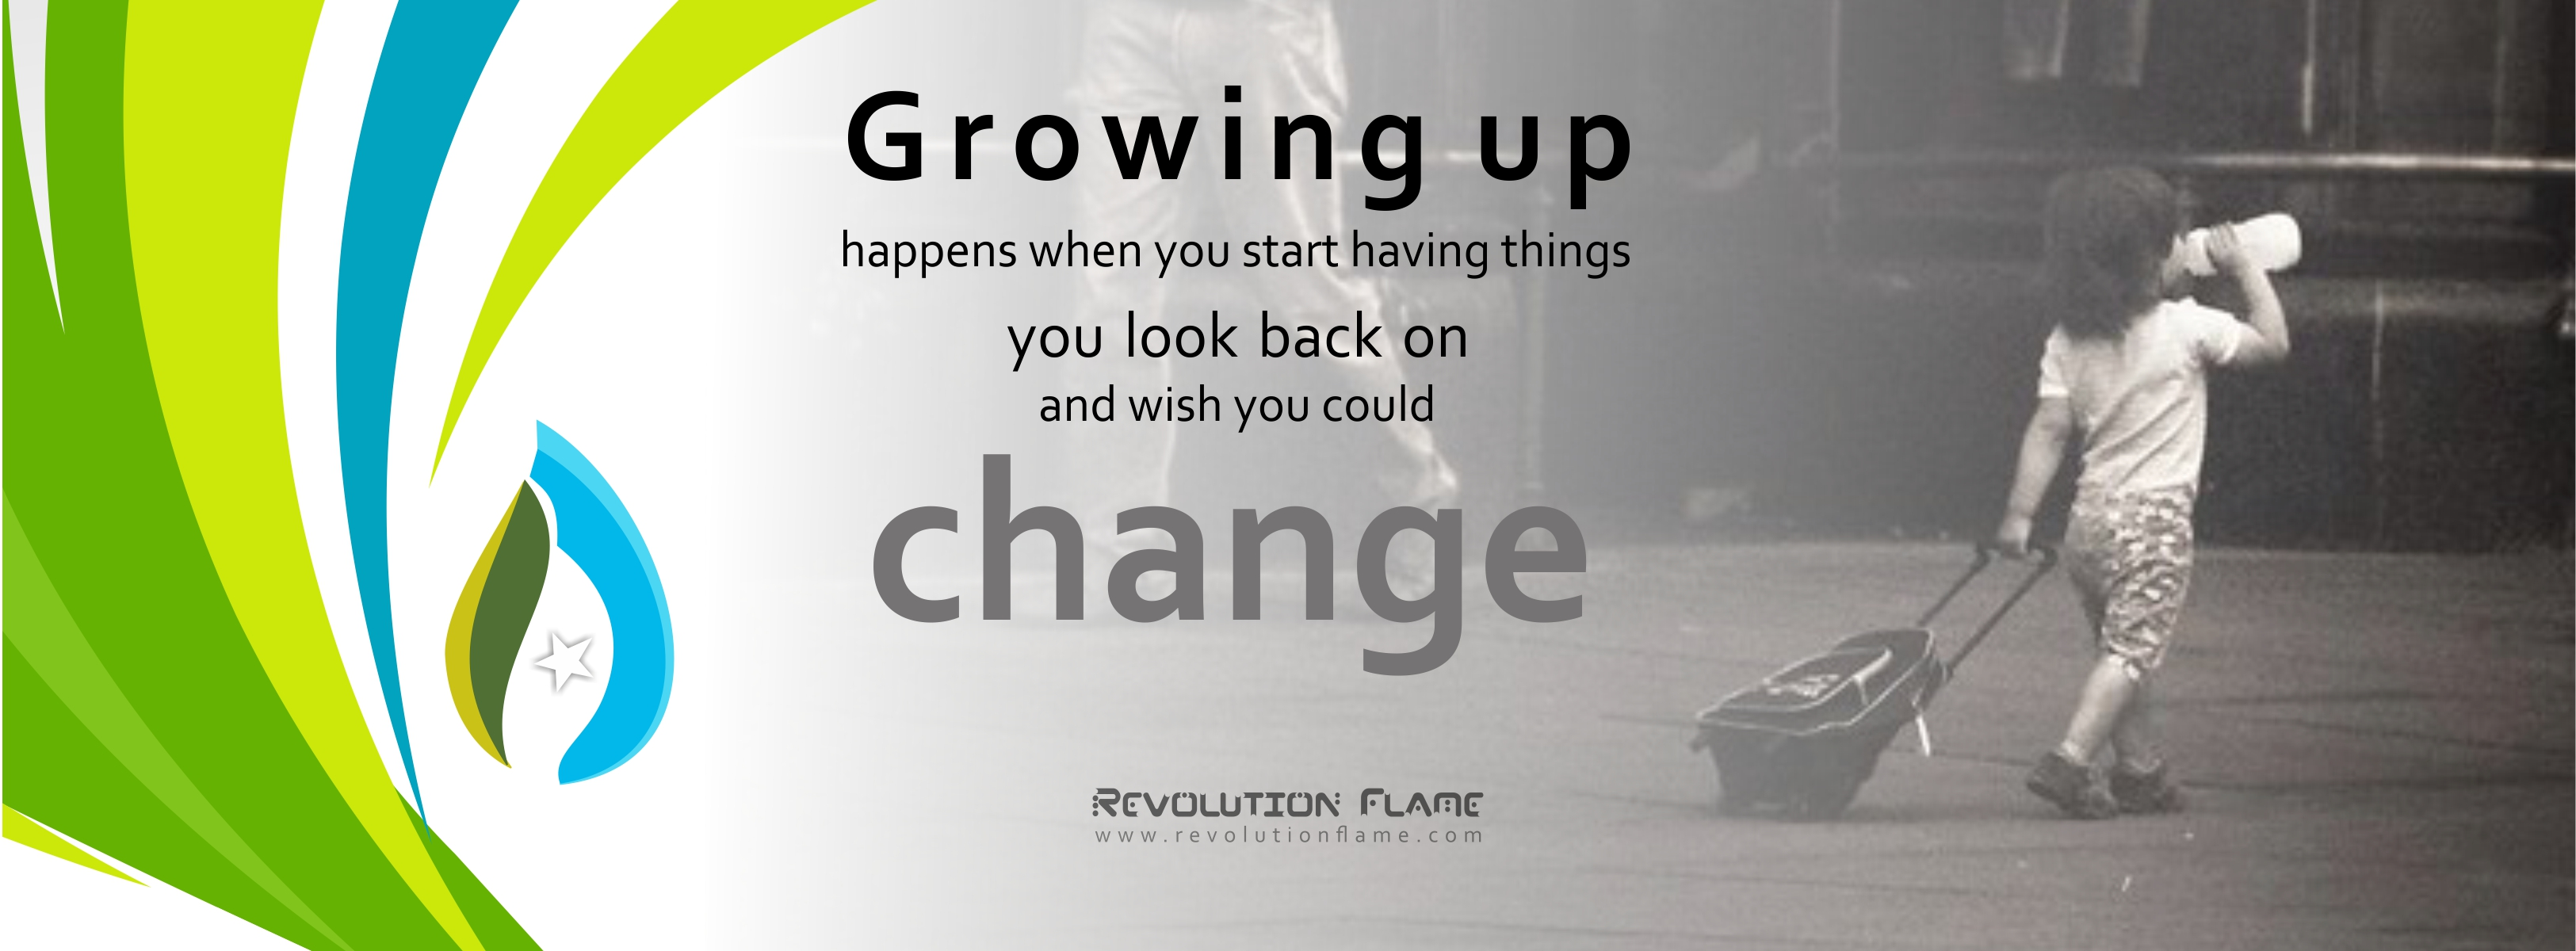 Quotes About Growing Up Together. QuotesGram